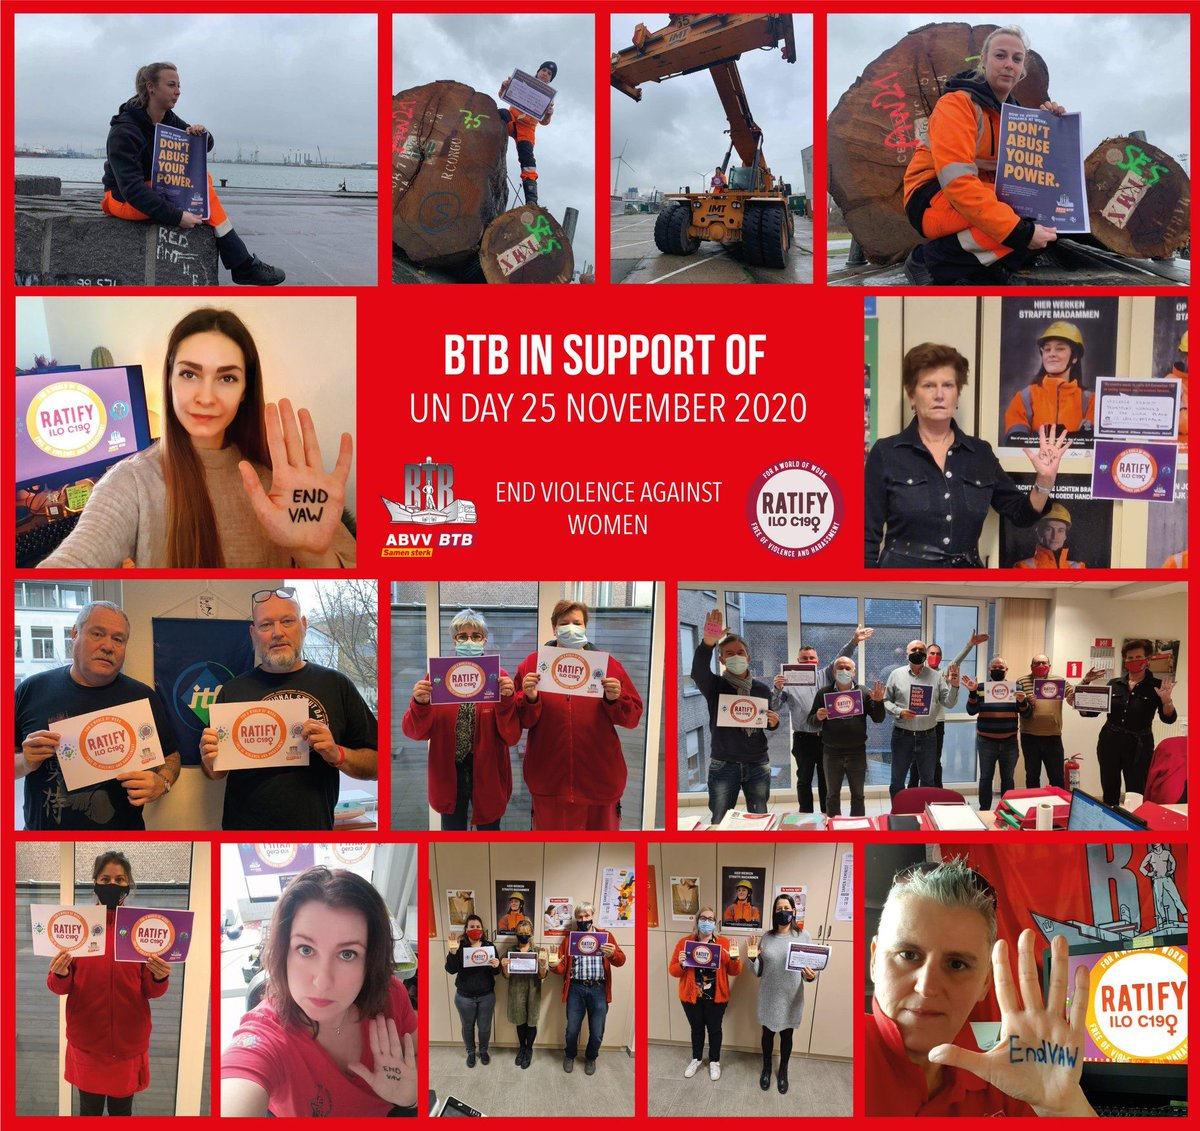 BTB in support of International Day for the Elimination of Violence against Women. Trade unions around the world are urging governments to ratify and implement the @ilo Convention to end gender-based violence and harassment in the world of work. #25Nov #UNDay #EndVAW #RatifyC190